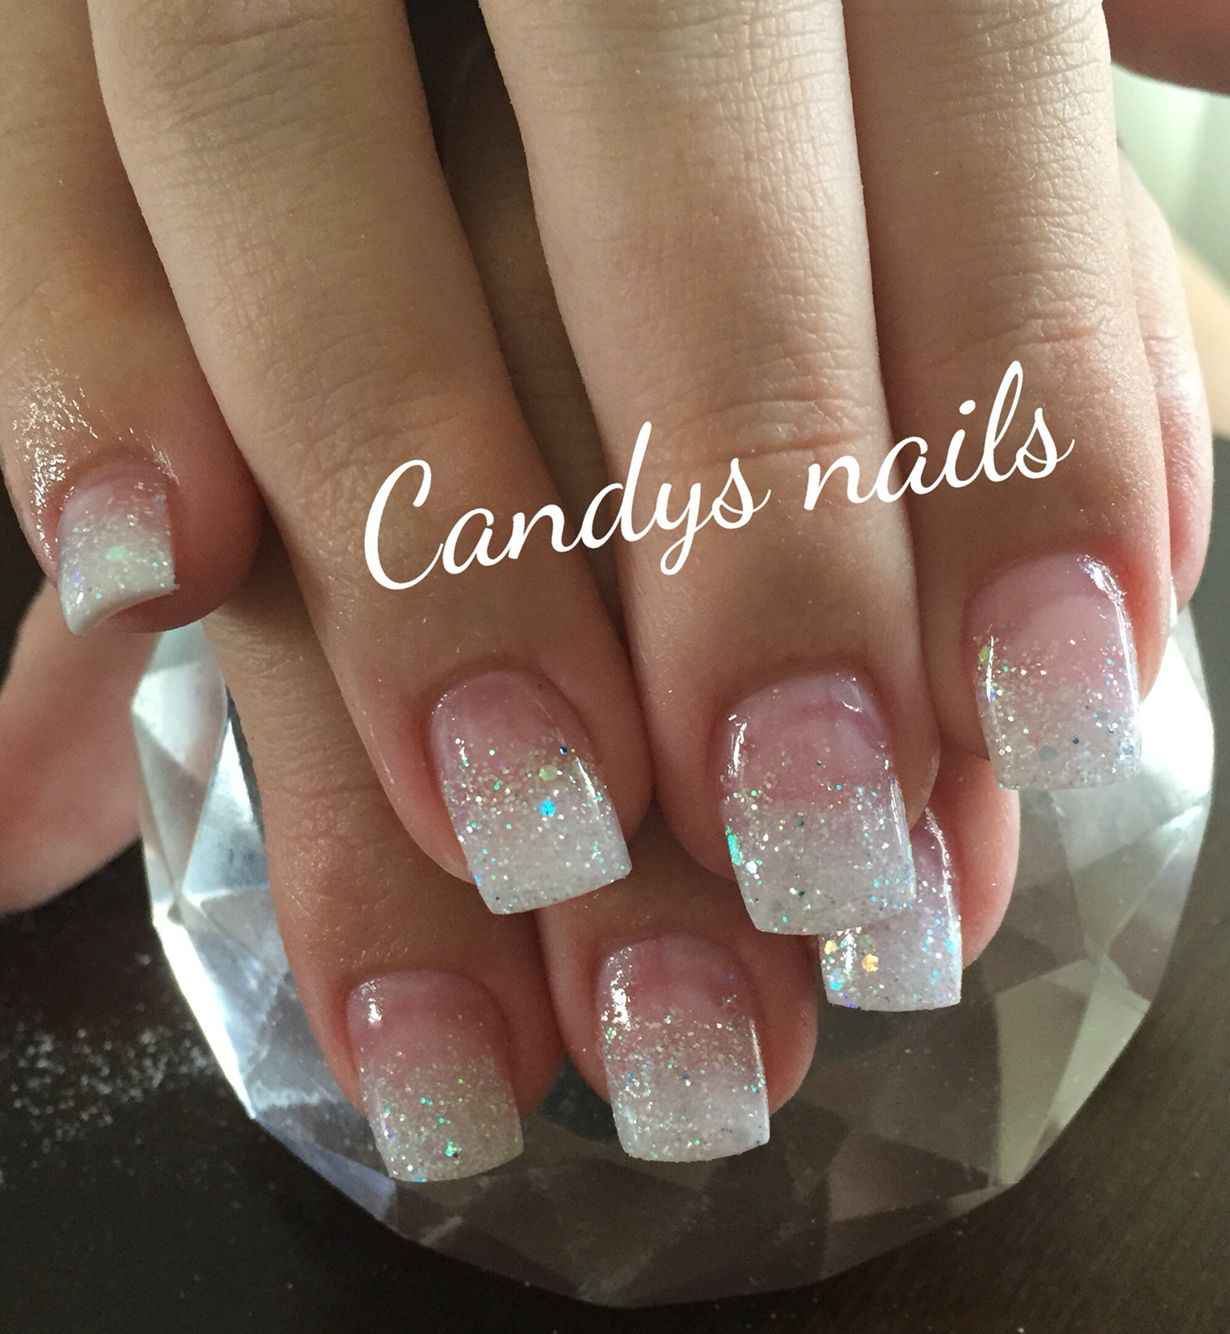 In love with these nails!!! | Nails | Pinterest | Makeup, Nail nail ...